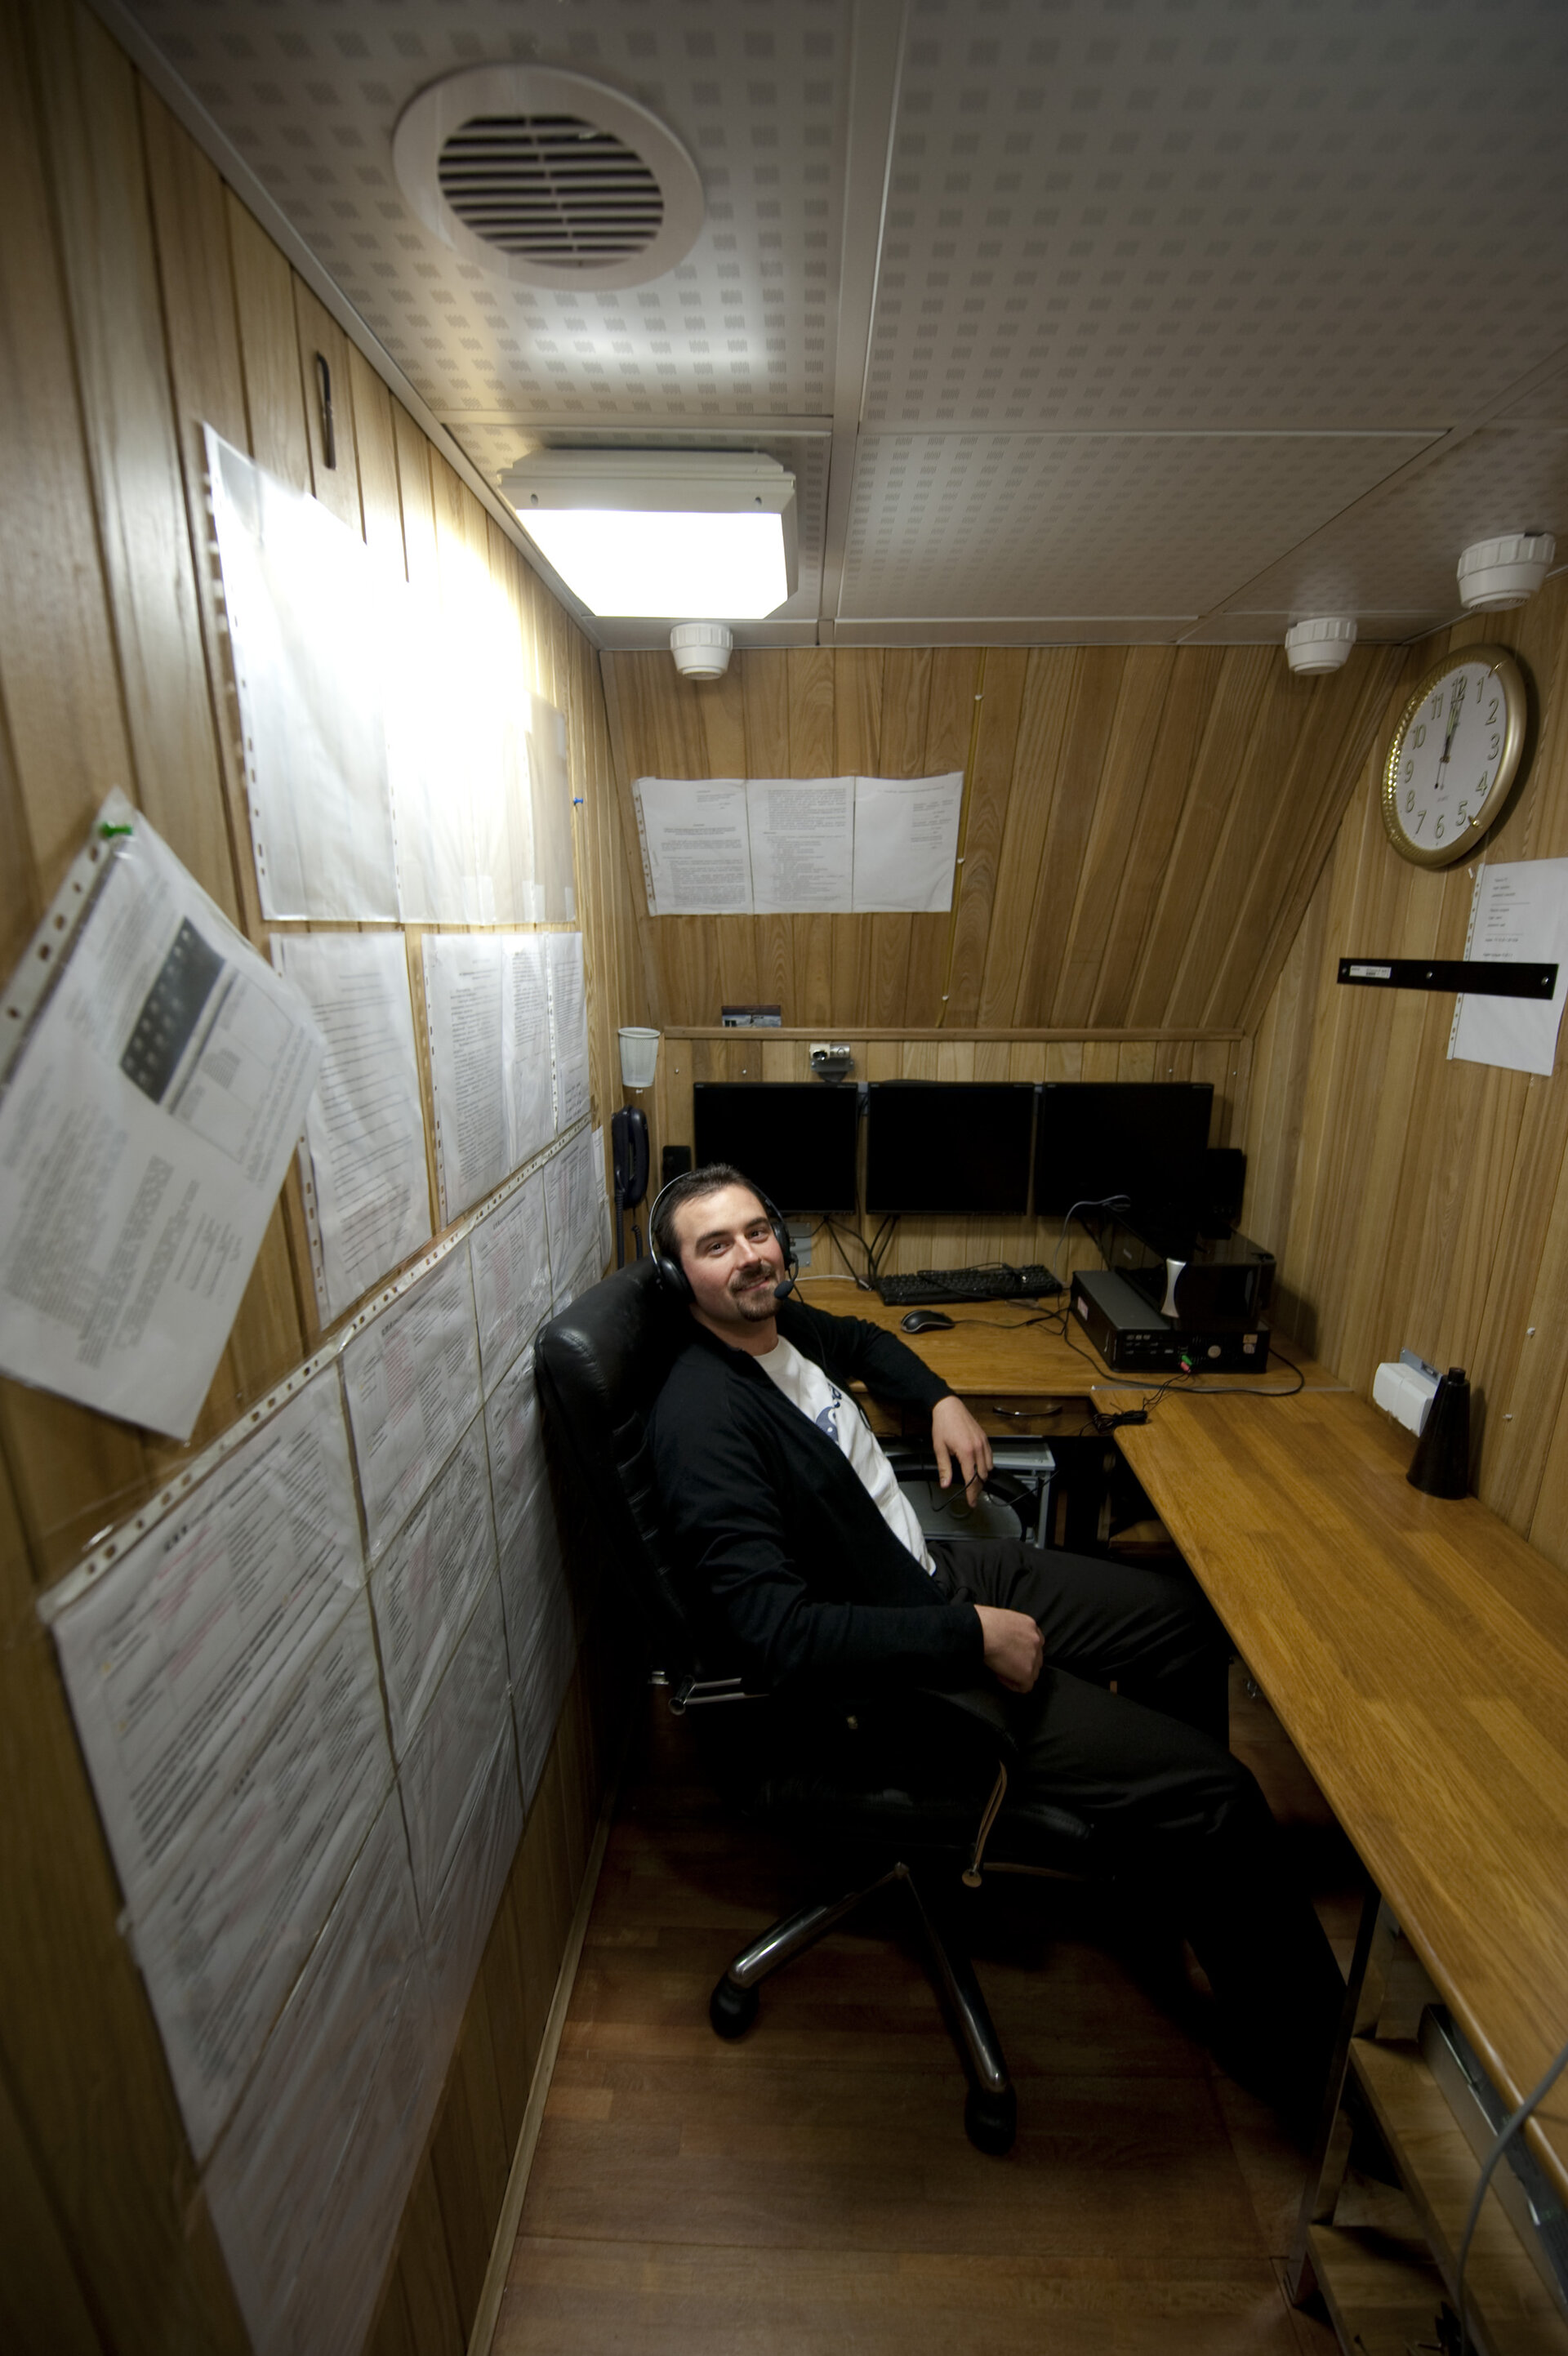 Romain Charles in the communication room of the Mars500